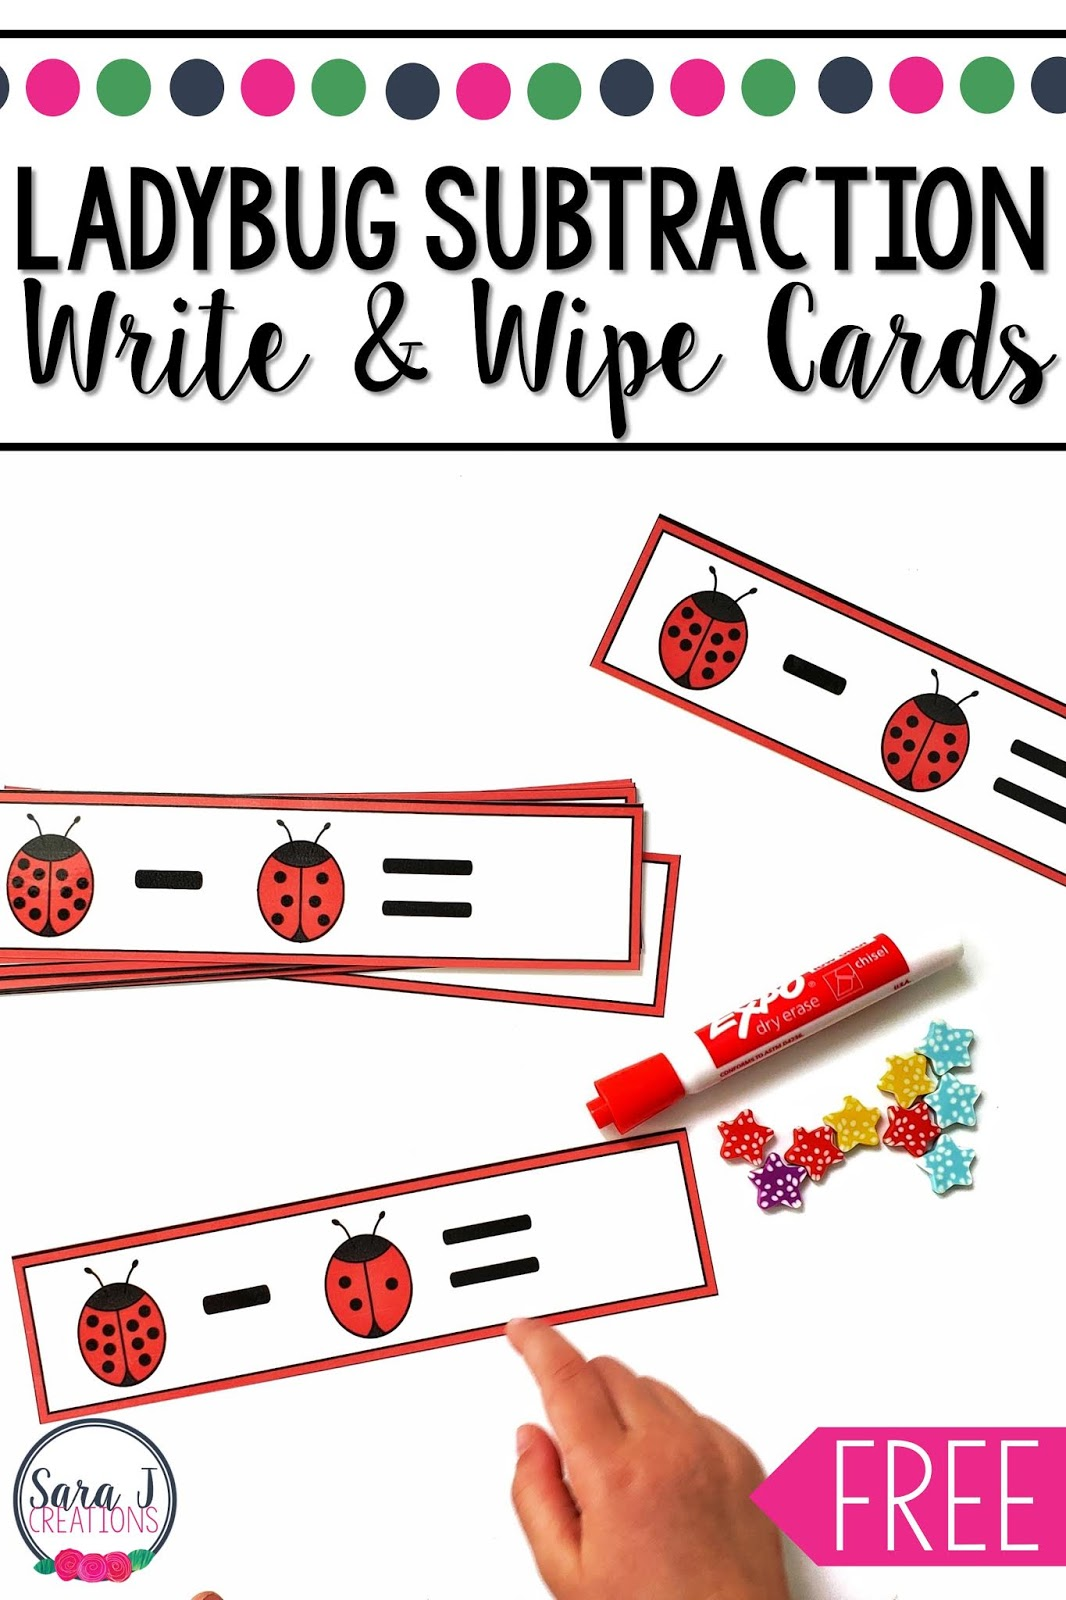 Ladybug Subtraction Write And Wipe Cards